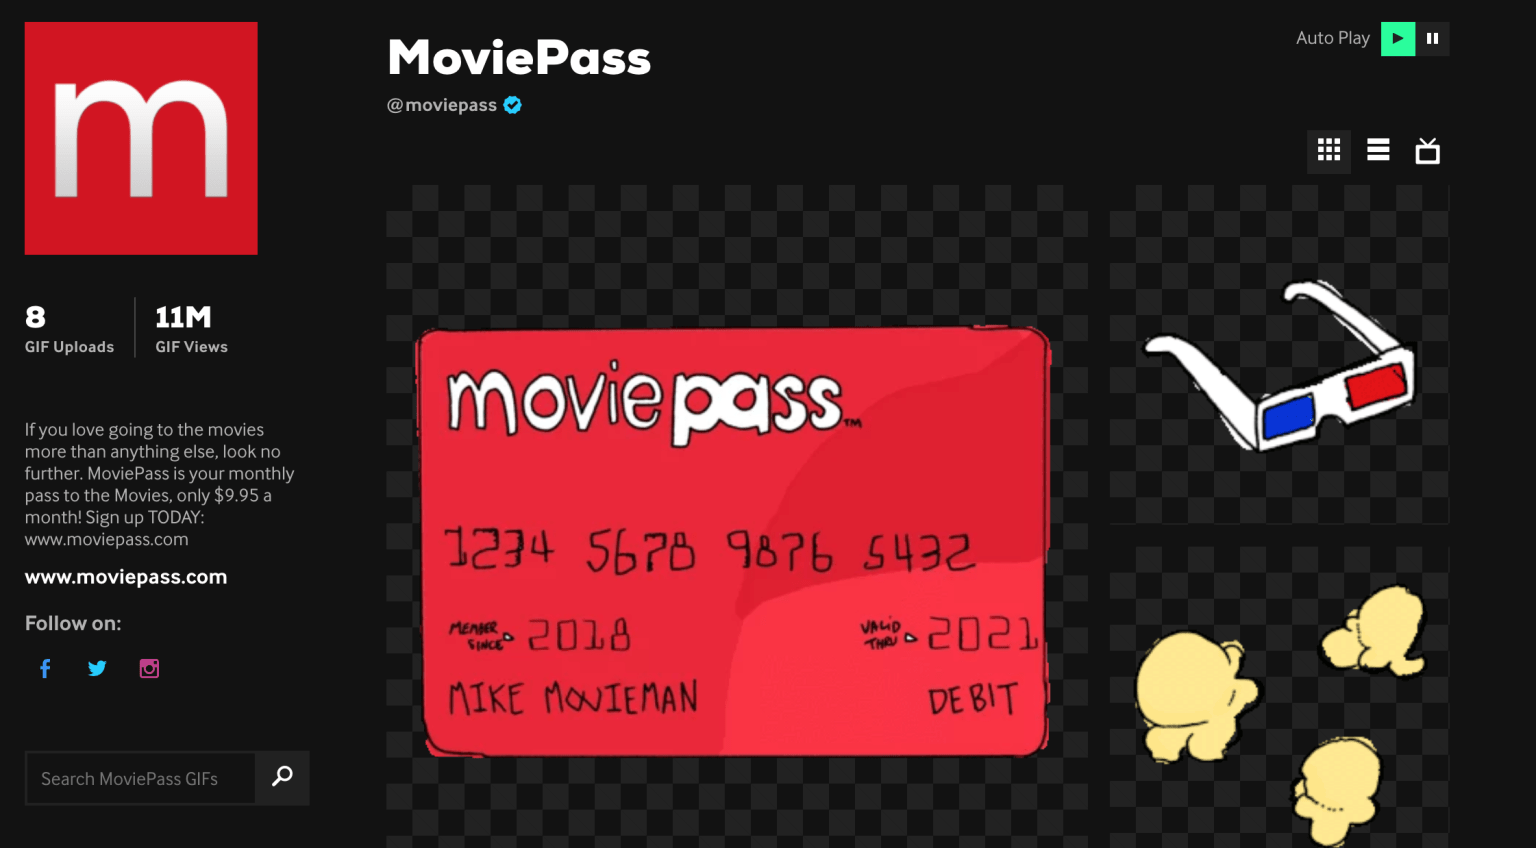 Moviepass x Giphy sticker pack